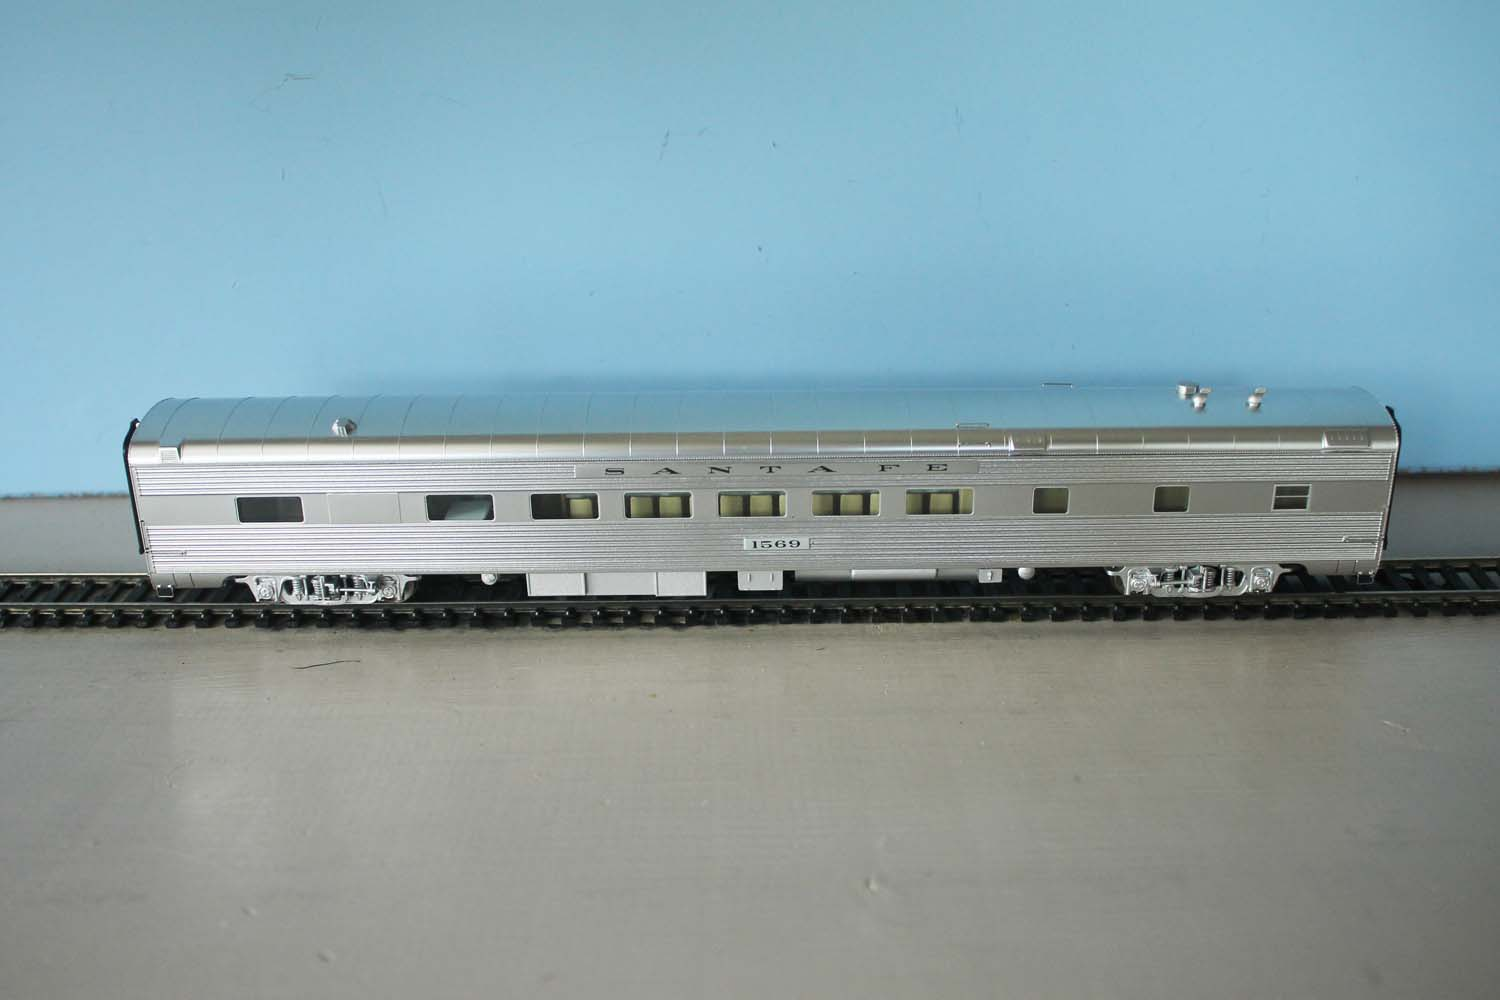 ATSF Lunch Counter Diner-Dorm #1569 (model)